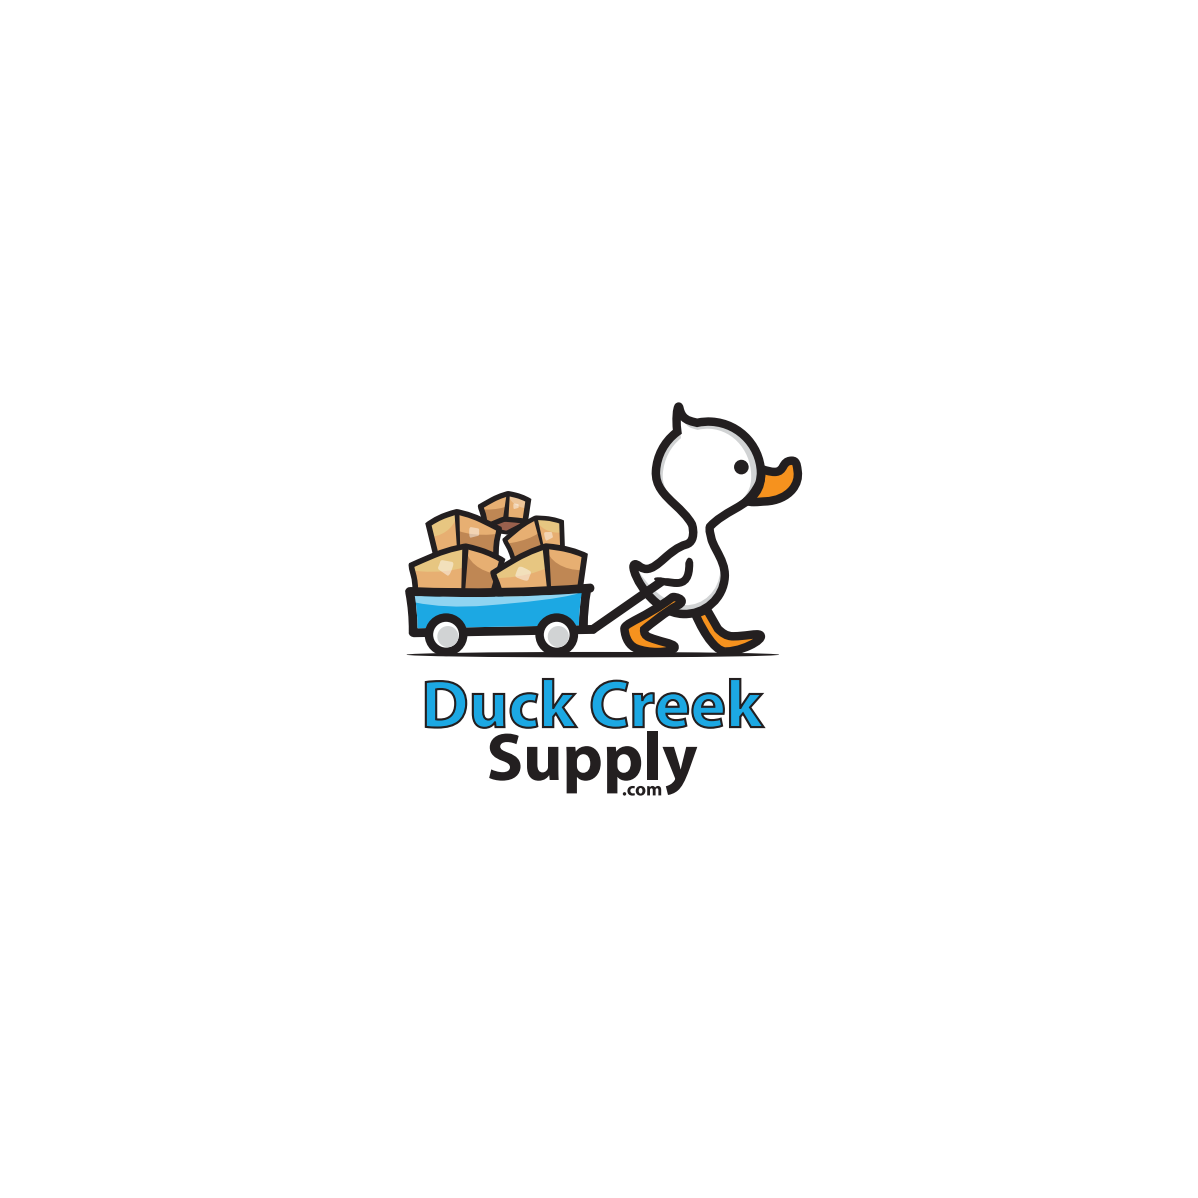 Logo, business card, and letterhead for Duck Creek Supply